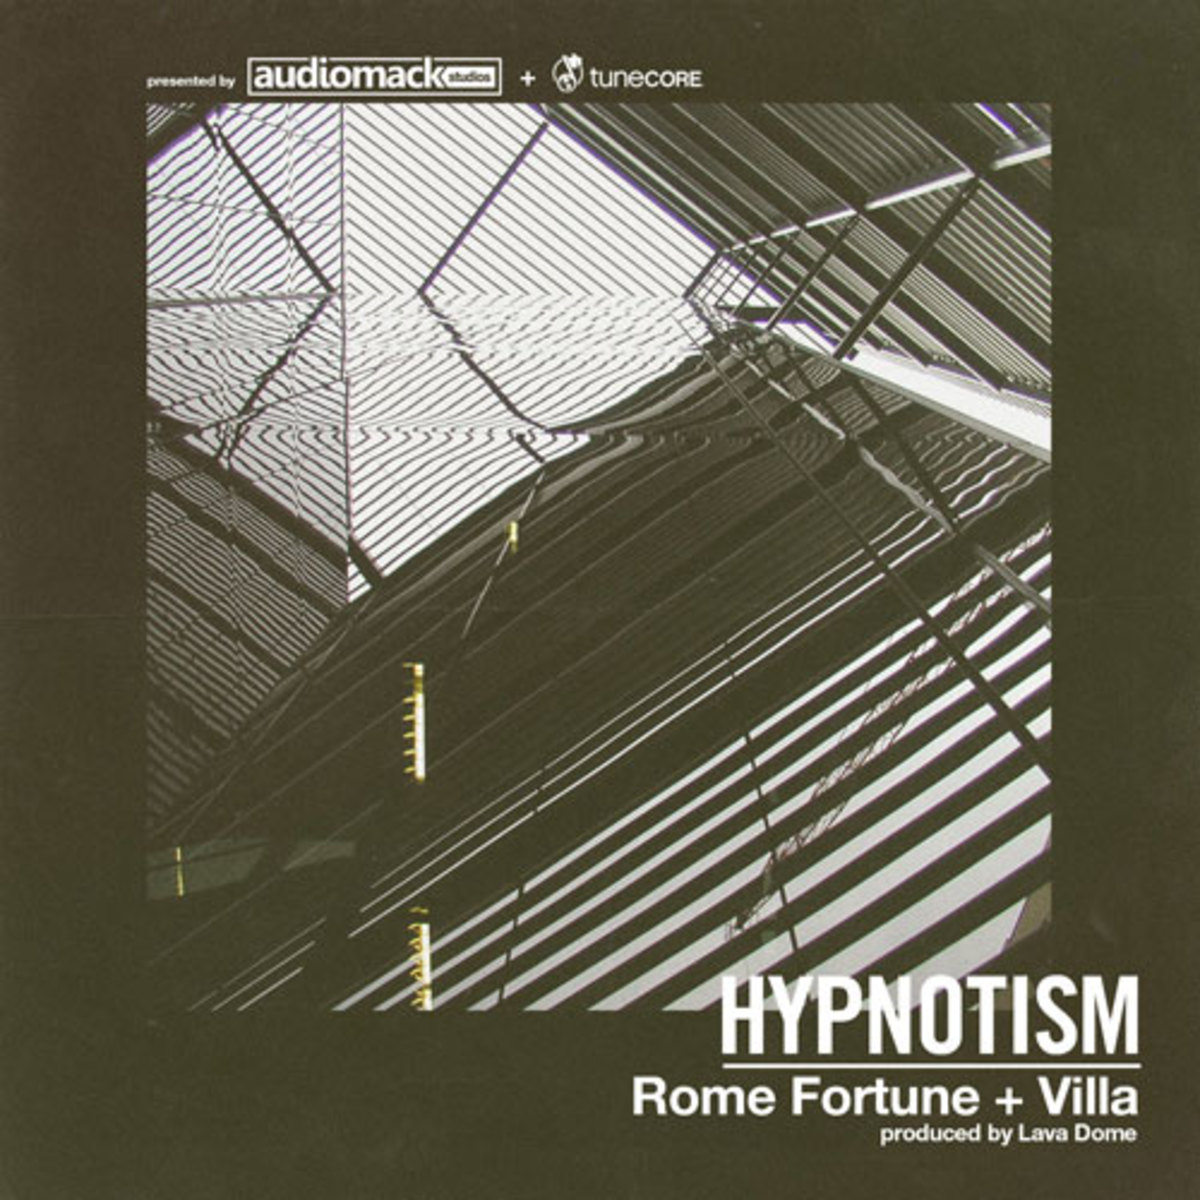 rome-fortune-hypnotism-artwork.jpg